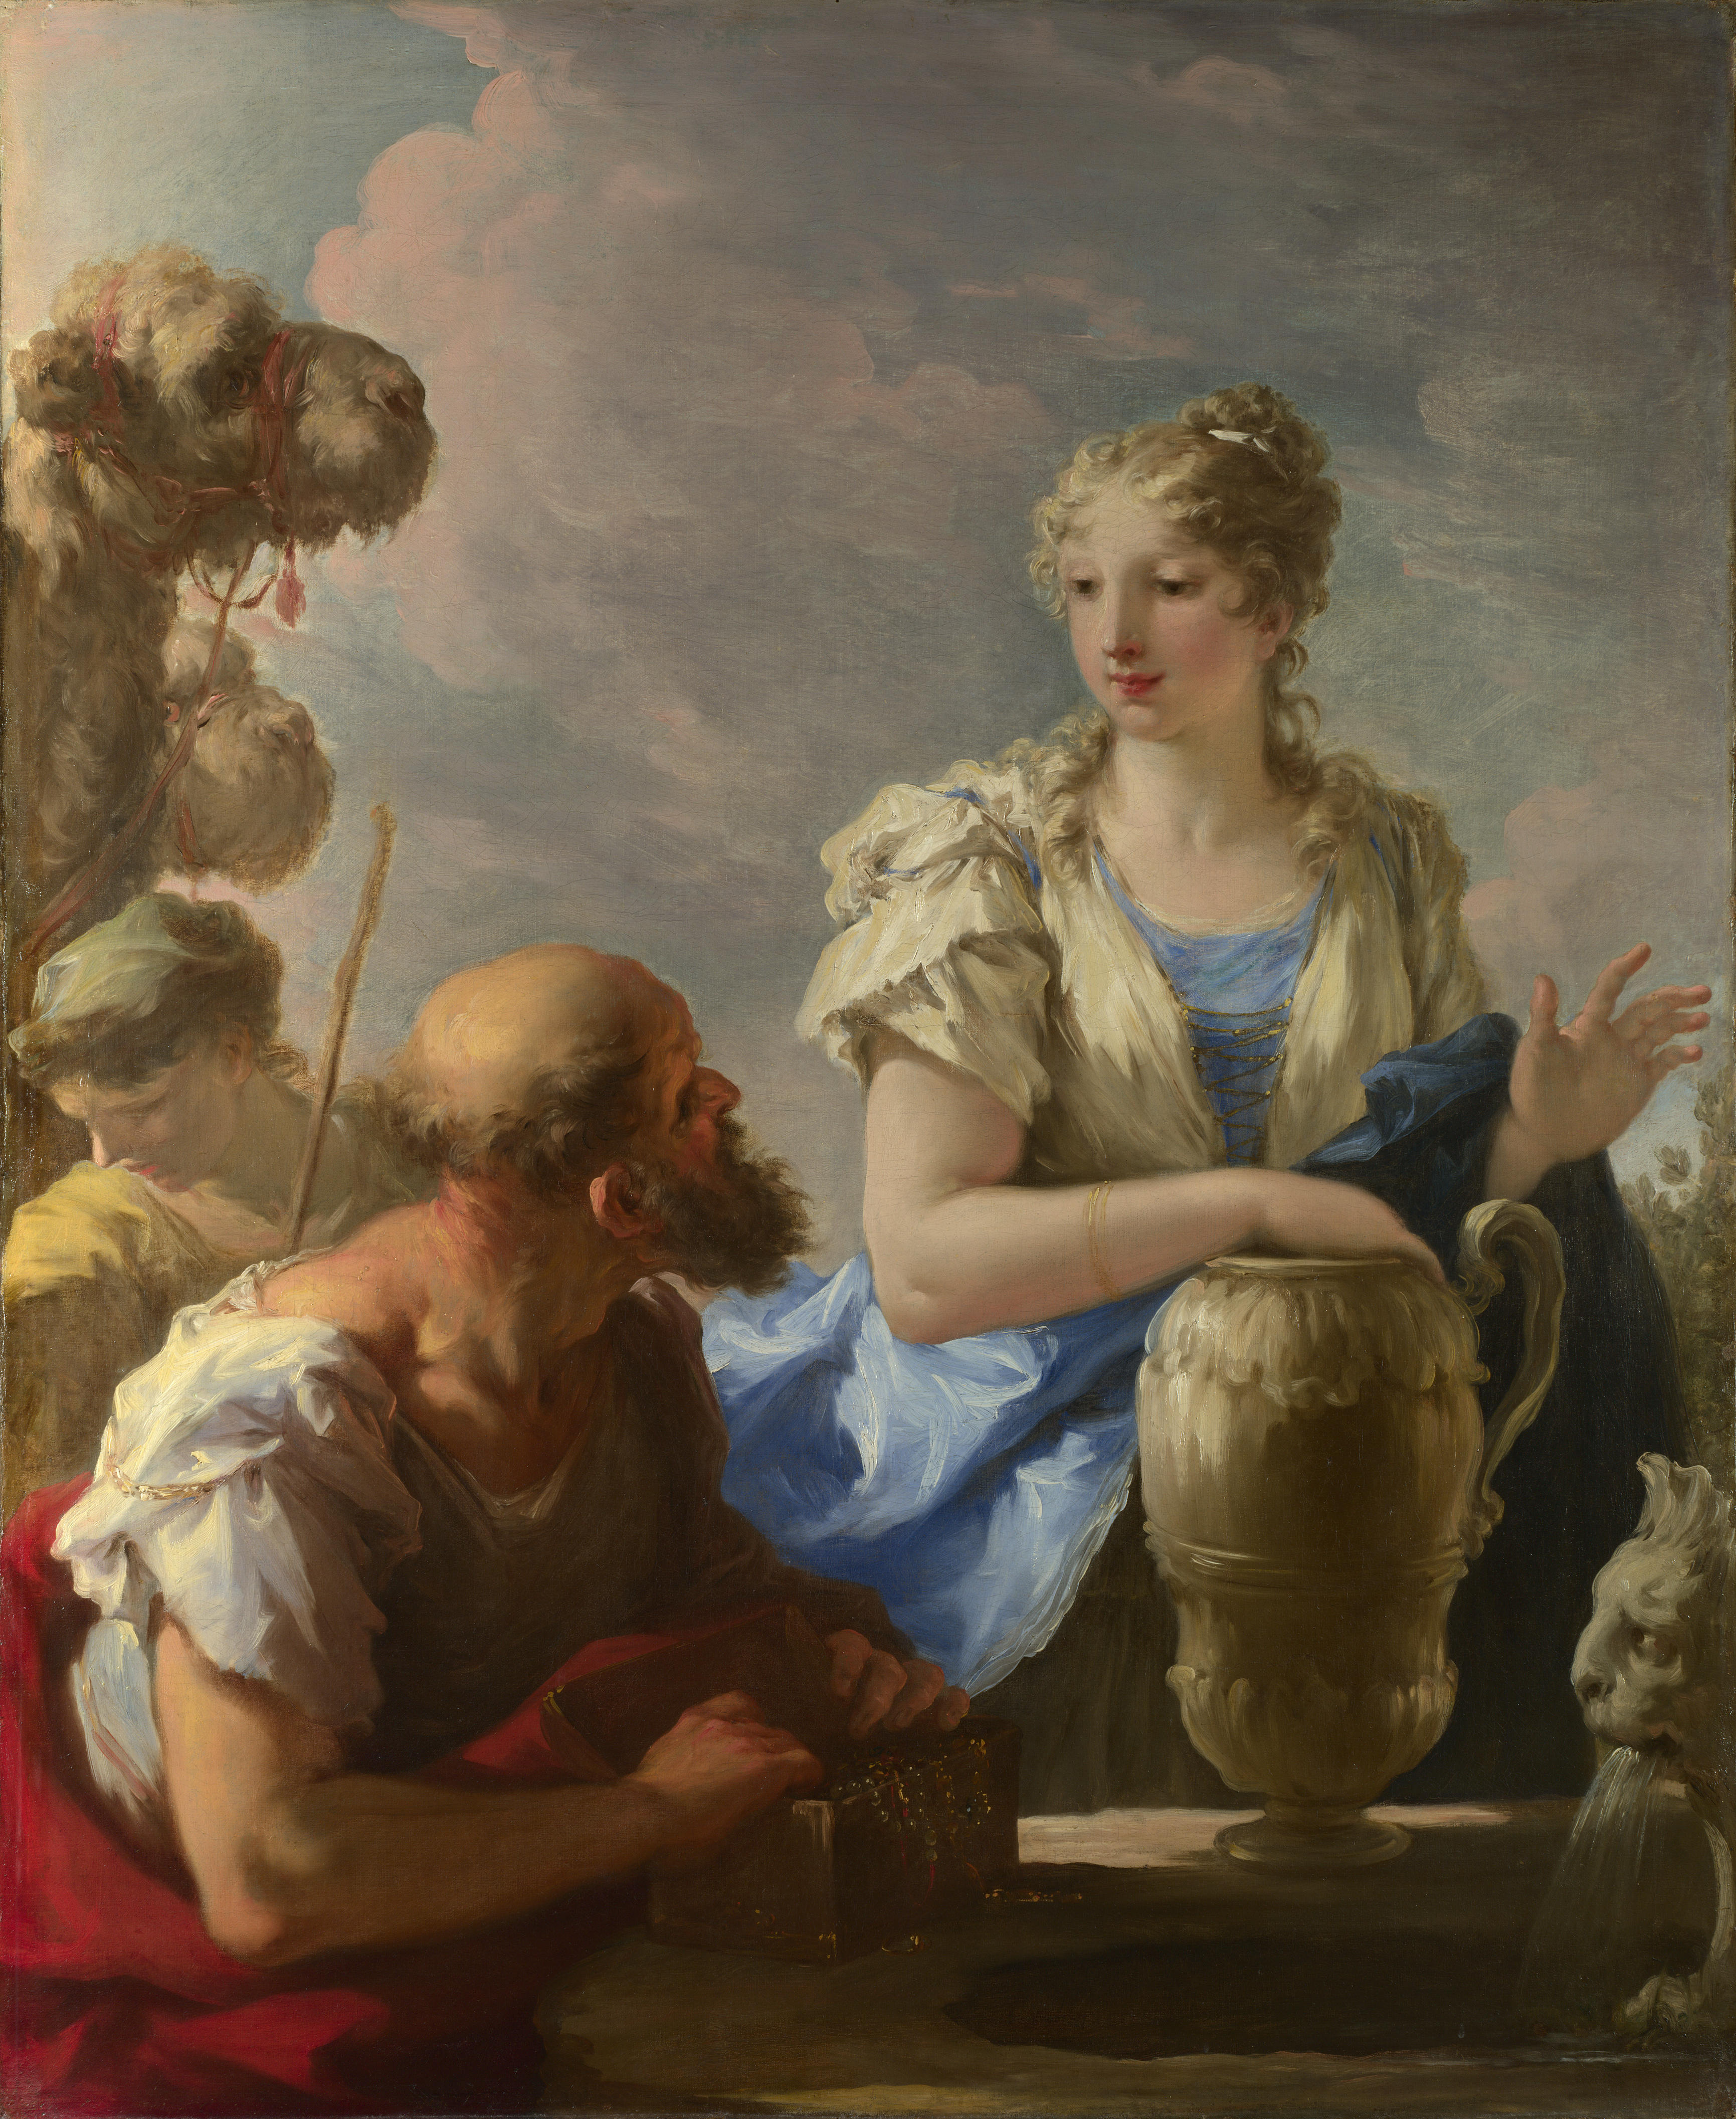 English: Rebecca at the well